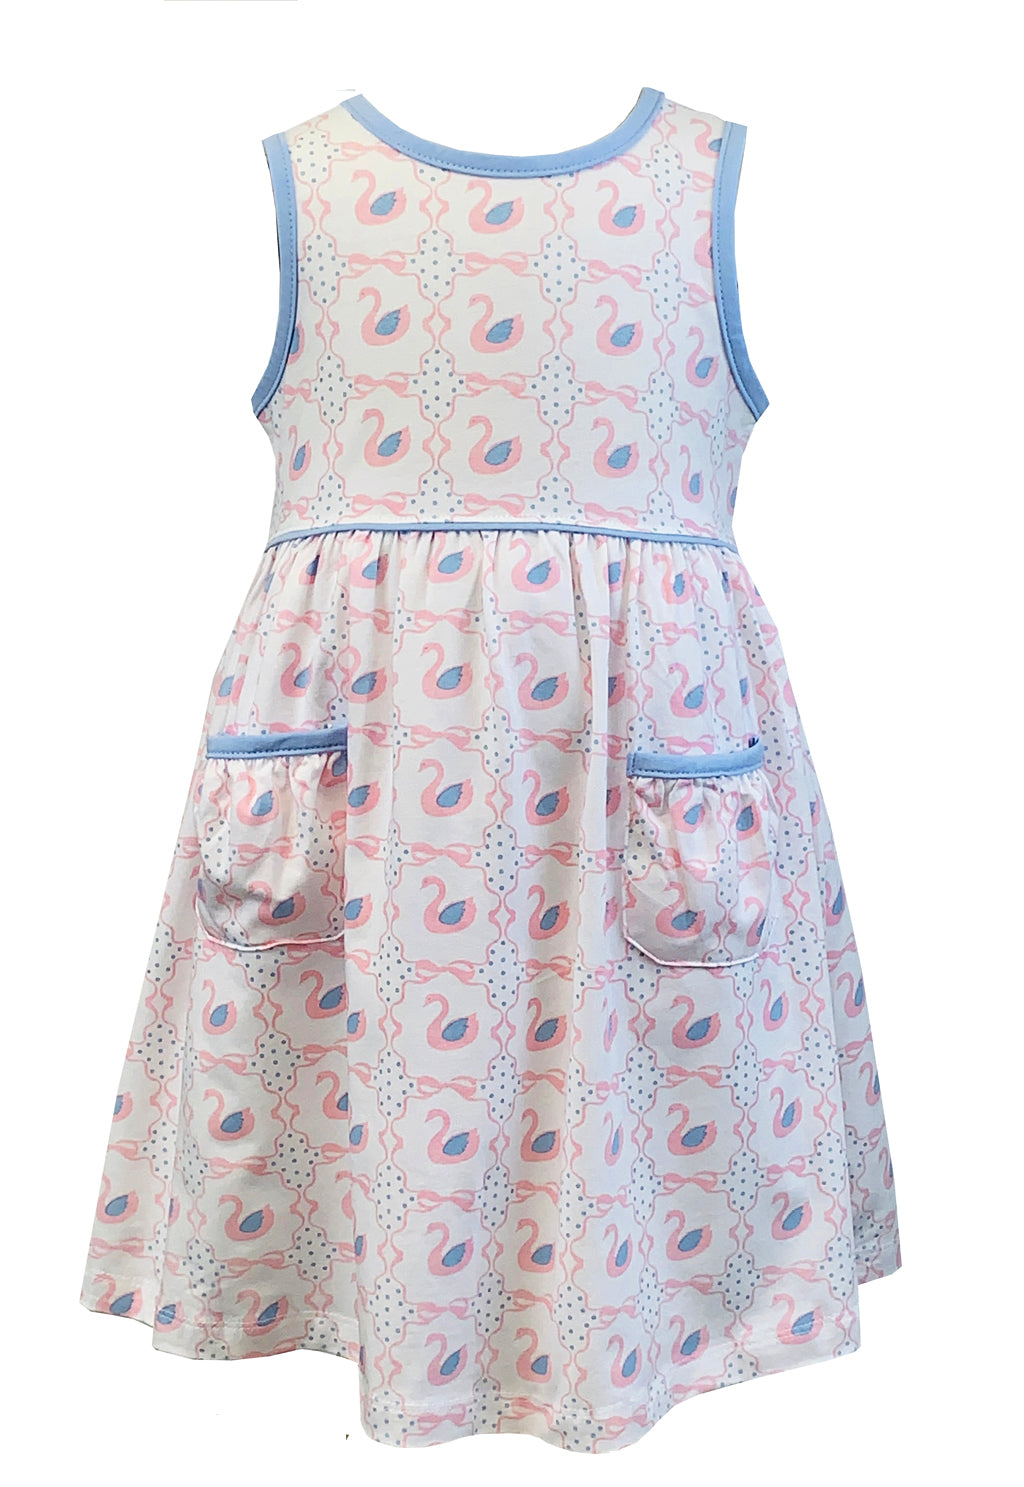 Tara Collection- Swan Sleeveless Dress